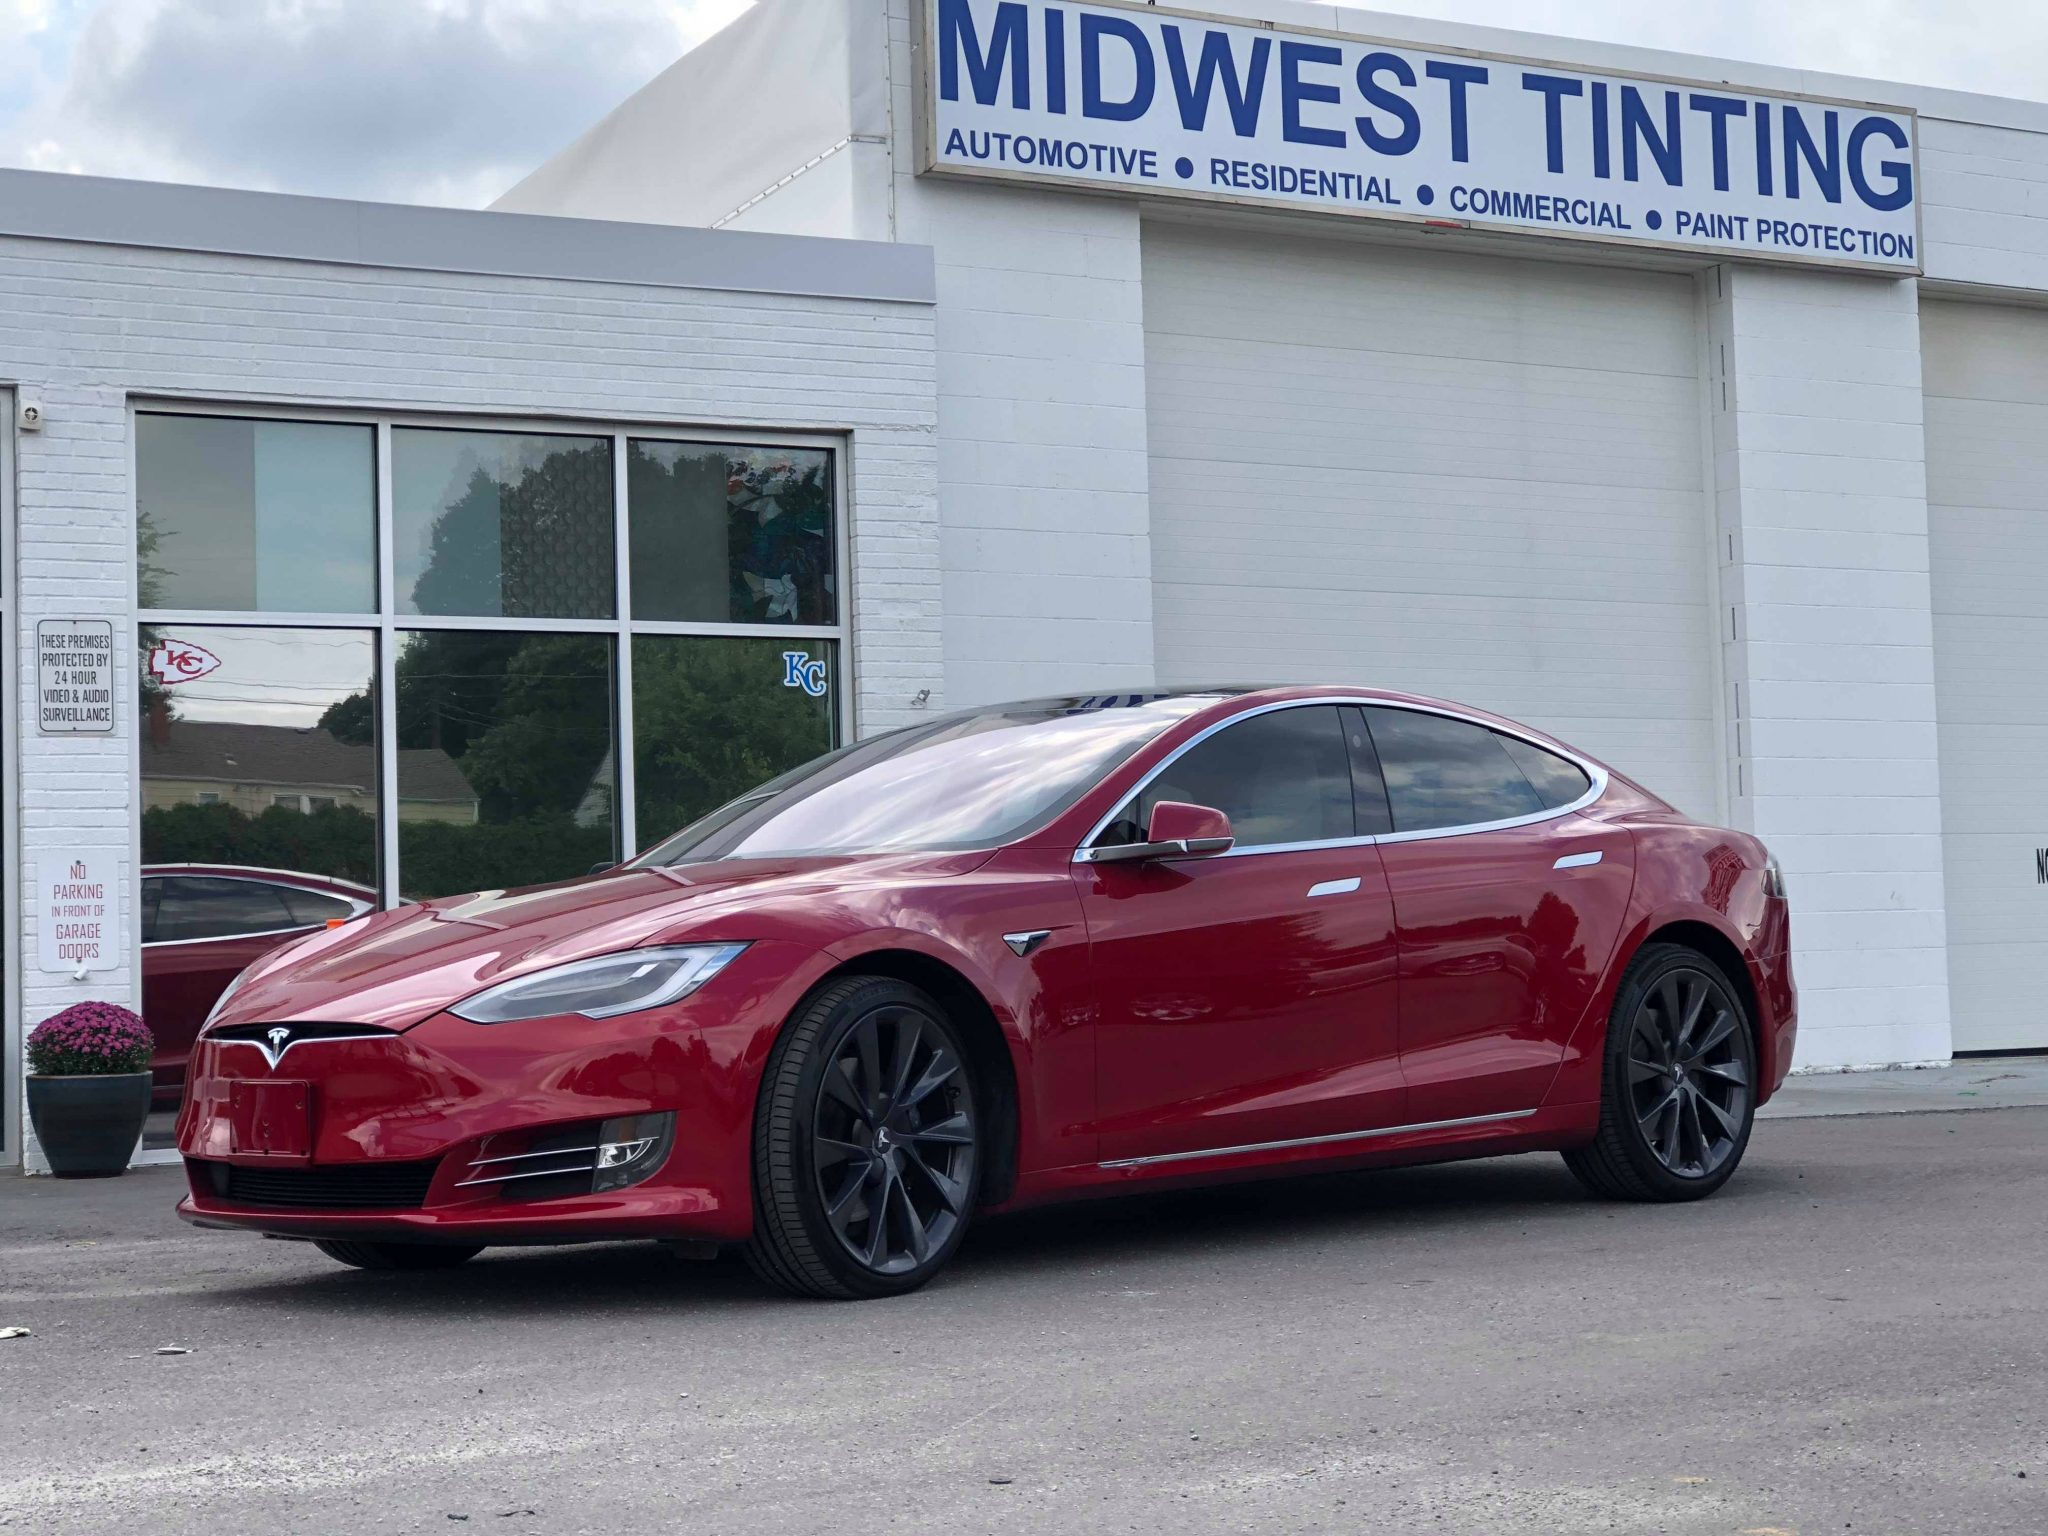 Midwest Tinting - Your Source for Tesla Model Upgrades - Window Tinting, Paint Protection Film and Vehicle Graphic work in the Kansas City Area.